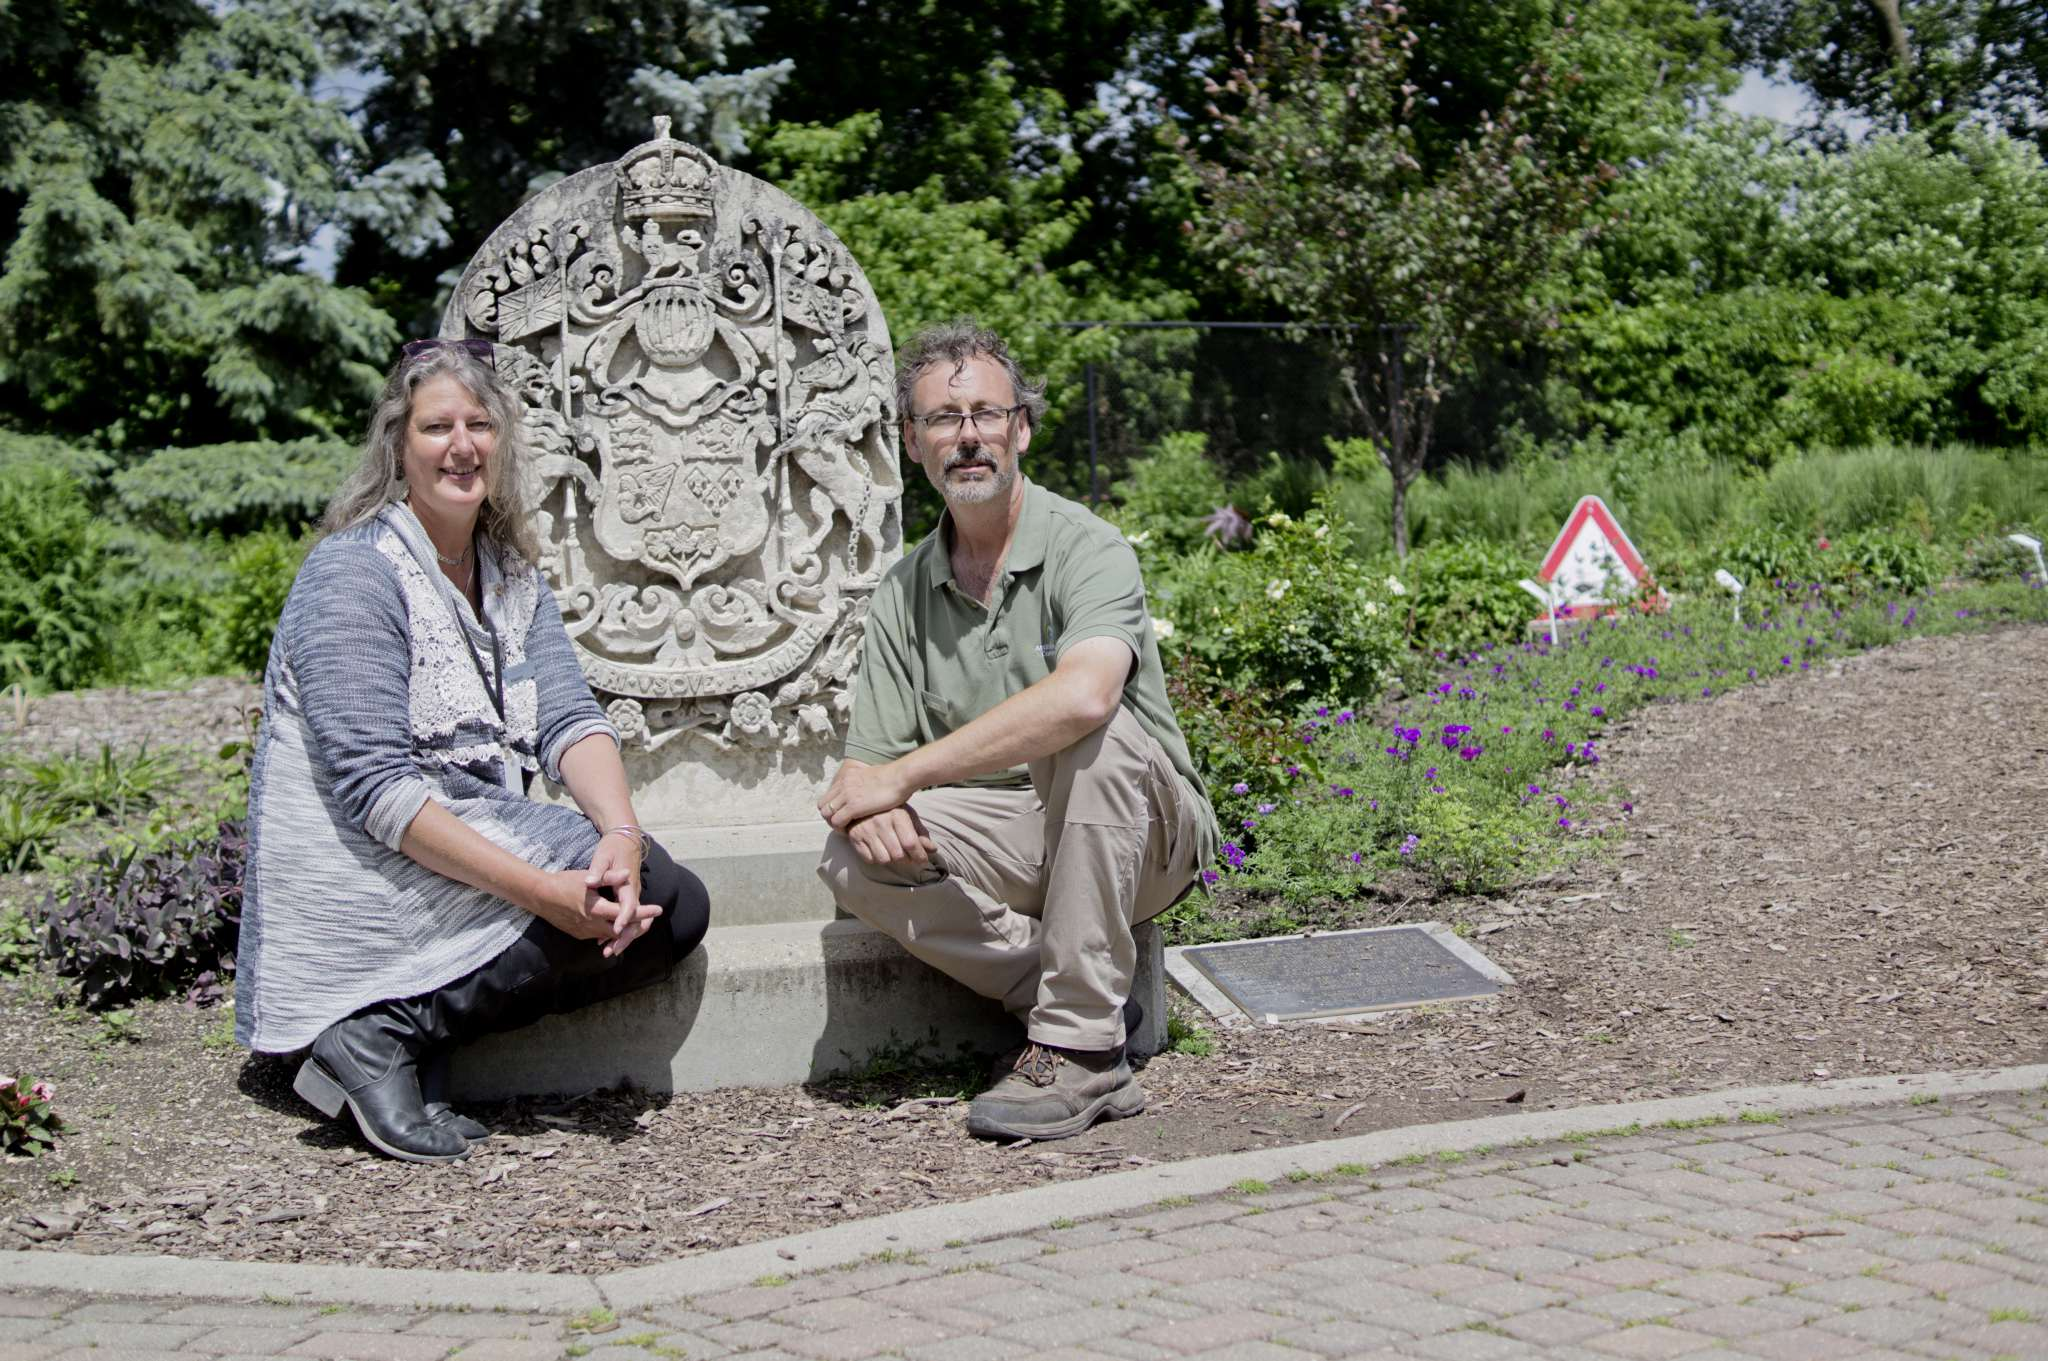 Kaaren Pearce, director of horticulture, and Craig Gillespie, crew lead in the English Garden, at Assiniboine Park pose next to the Canadian coat of arms near the rose garden. Assiniboine Park's gardens were selected as one of the top 150 garden experiences in the country by the Canadian Garden Council.